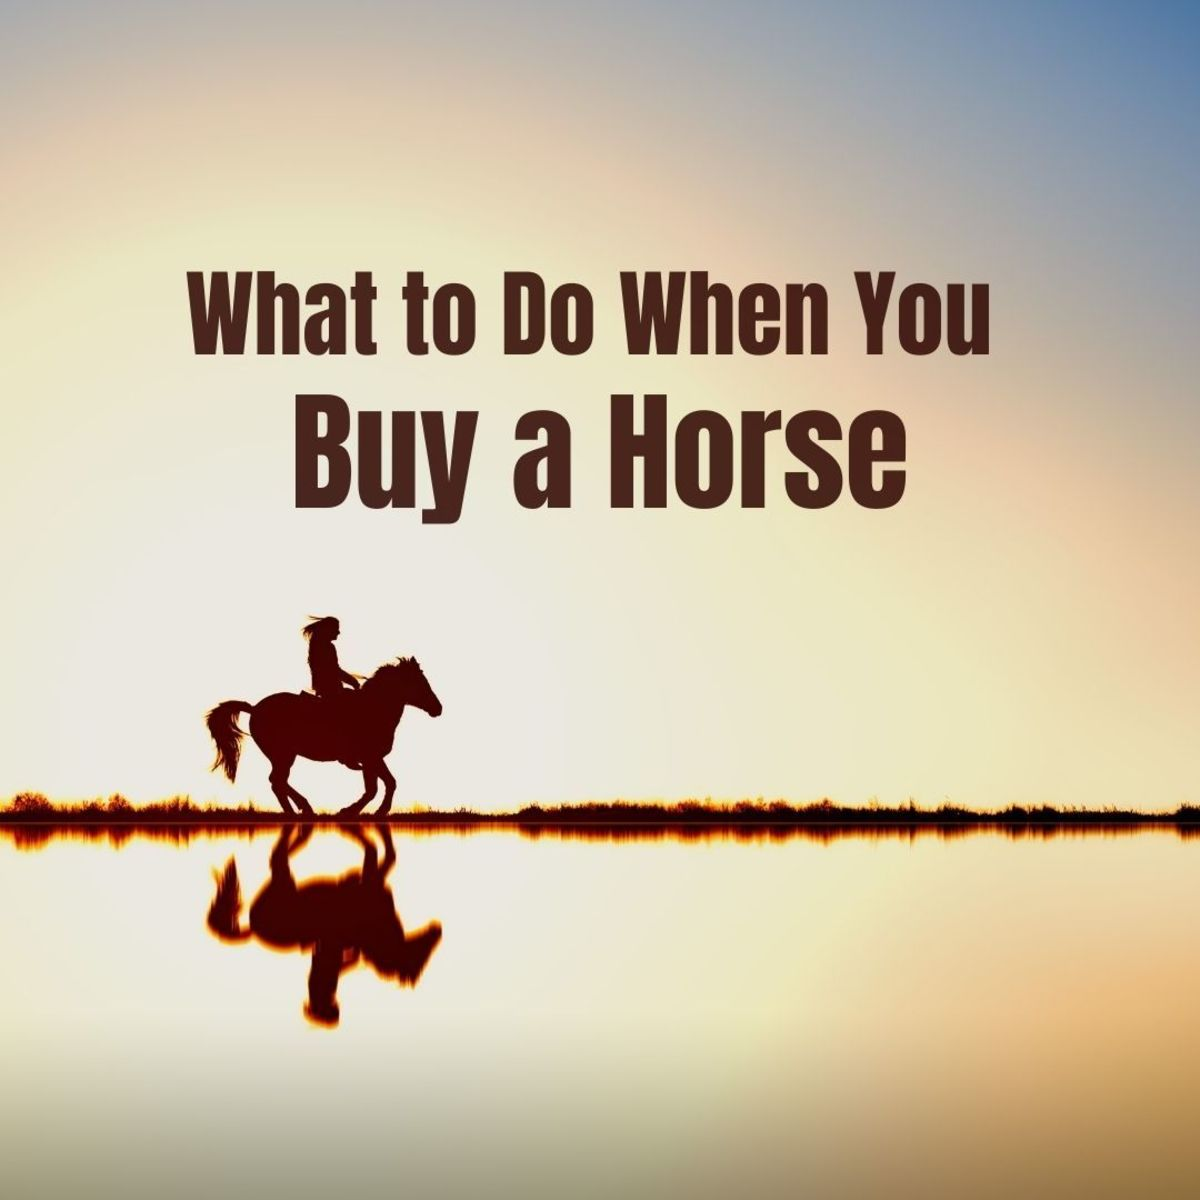 A guide to buying a horse